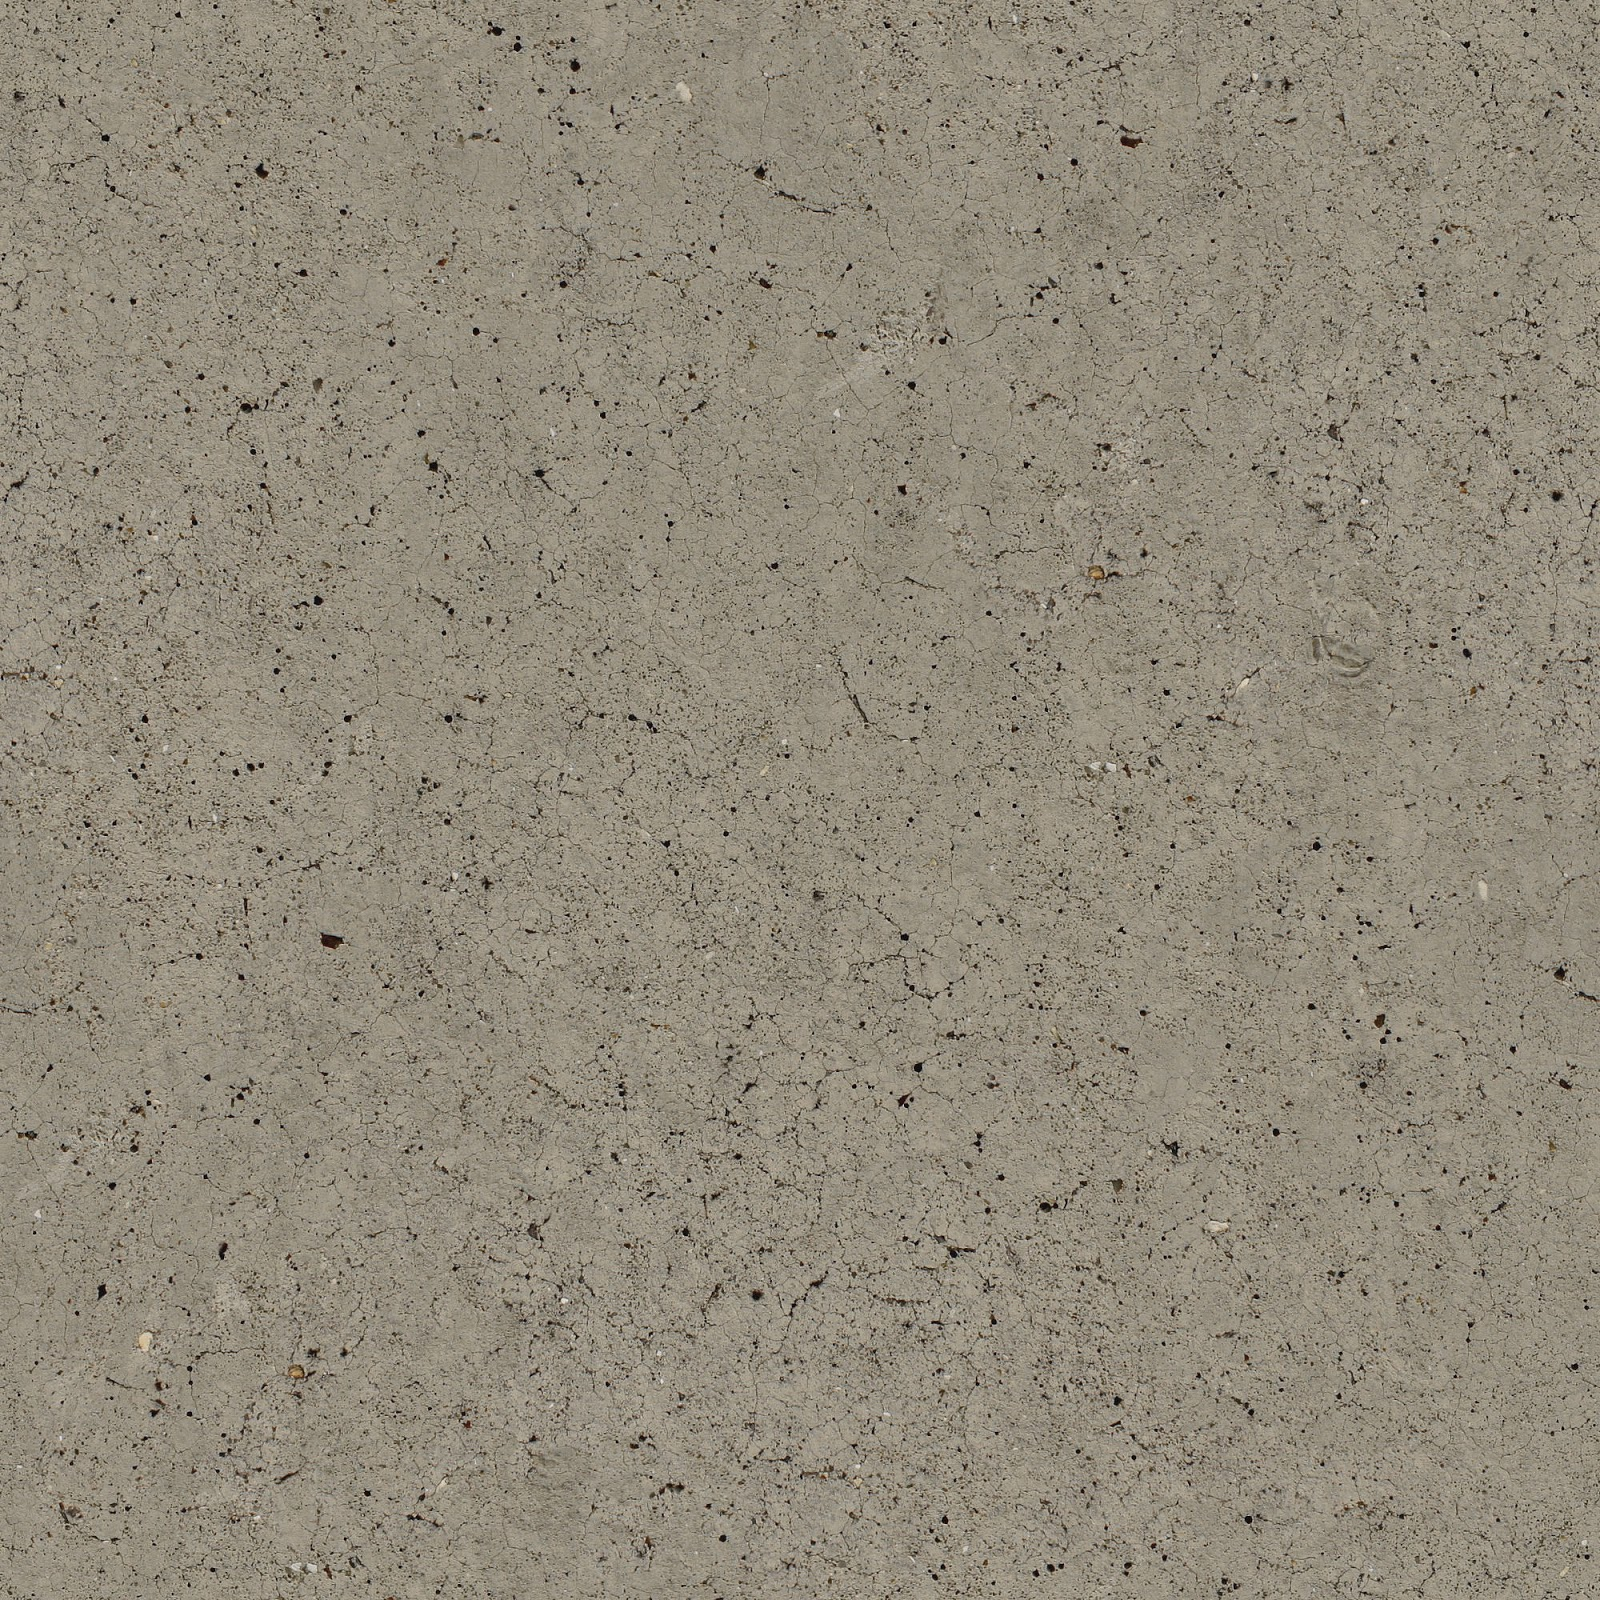 Concrete flooring texture 28 images concrete floor for Polished concrete photoshop